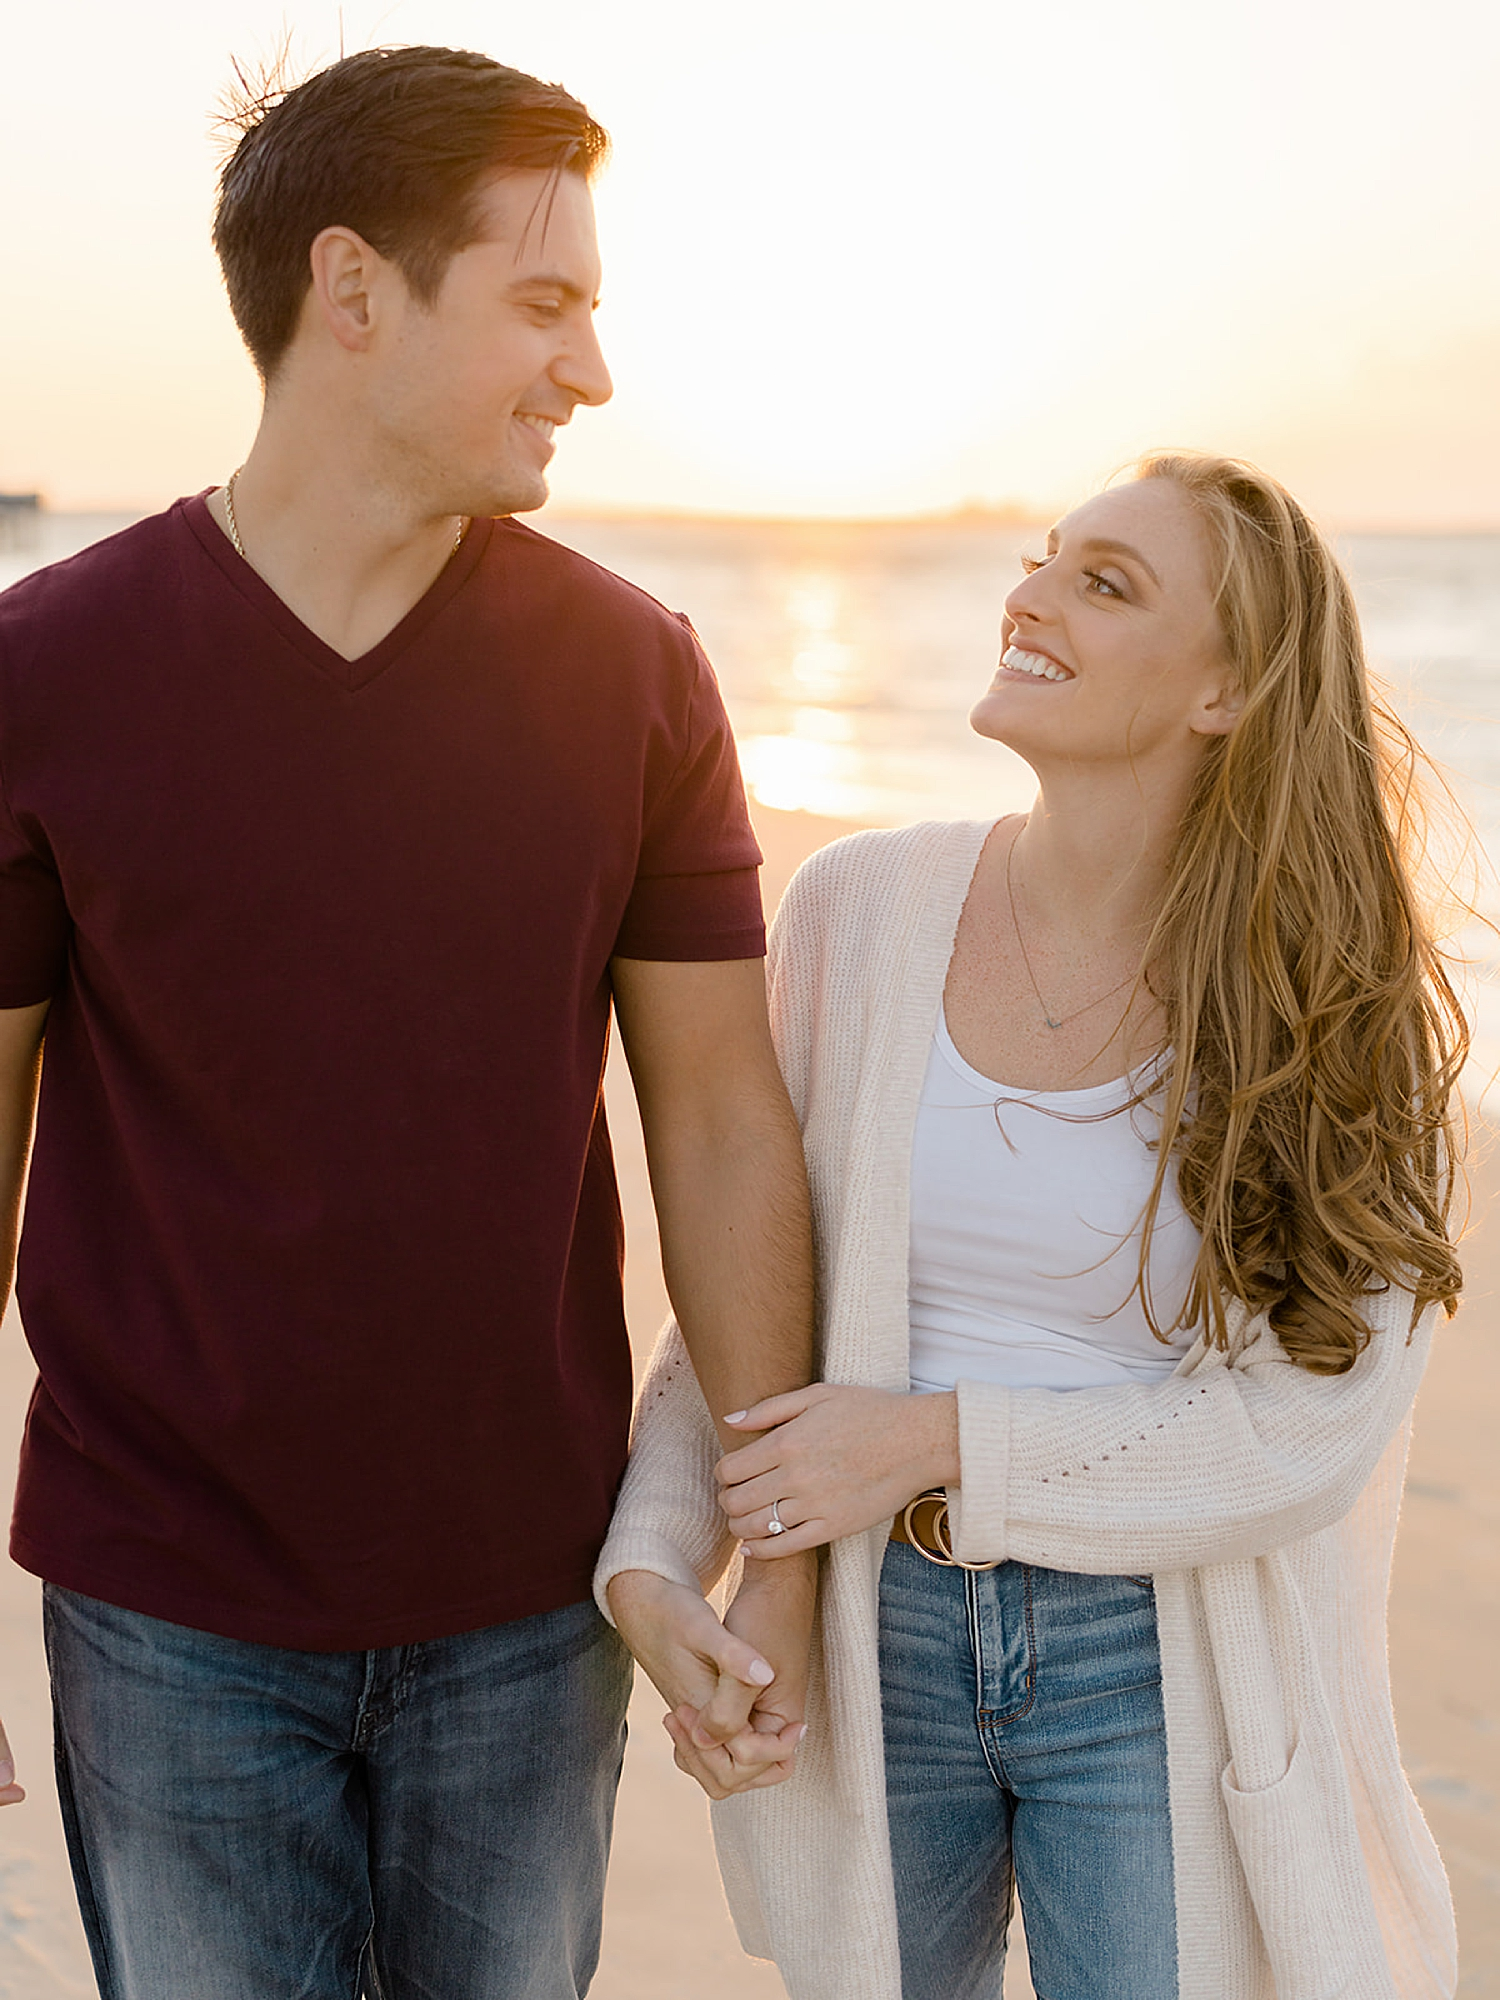 Ocean City NJ Engagement Photography by Magdalena Studios 0028